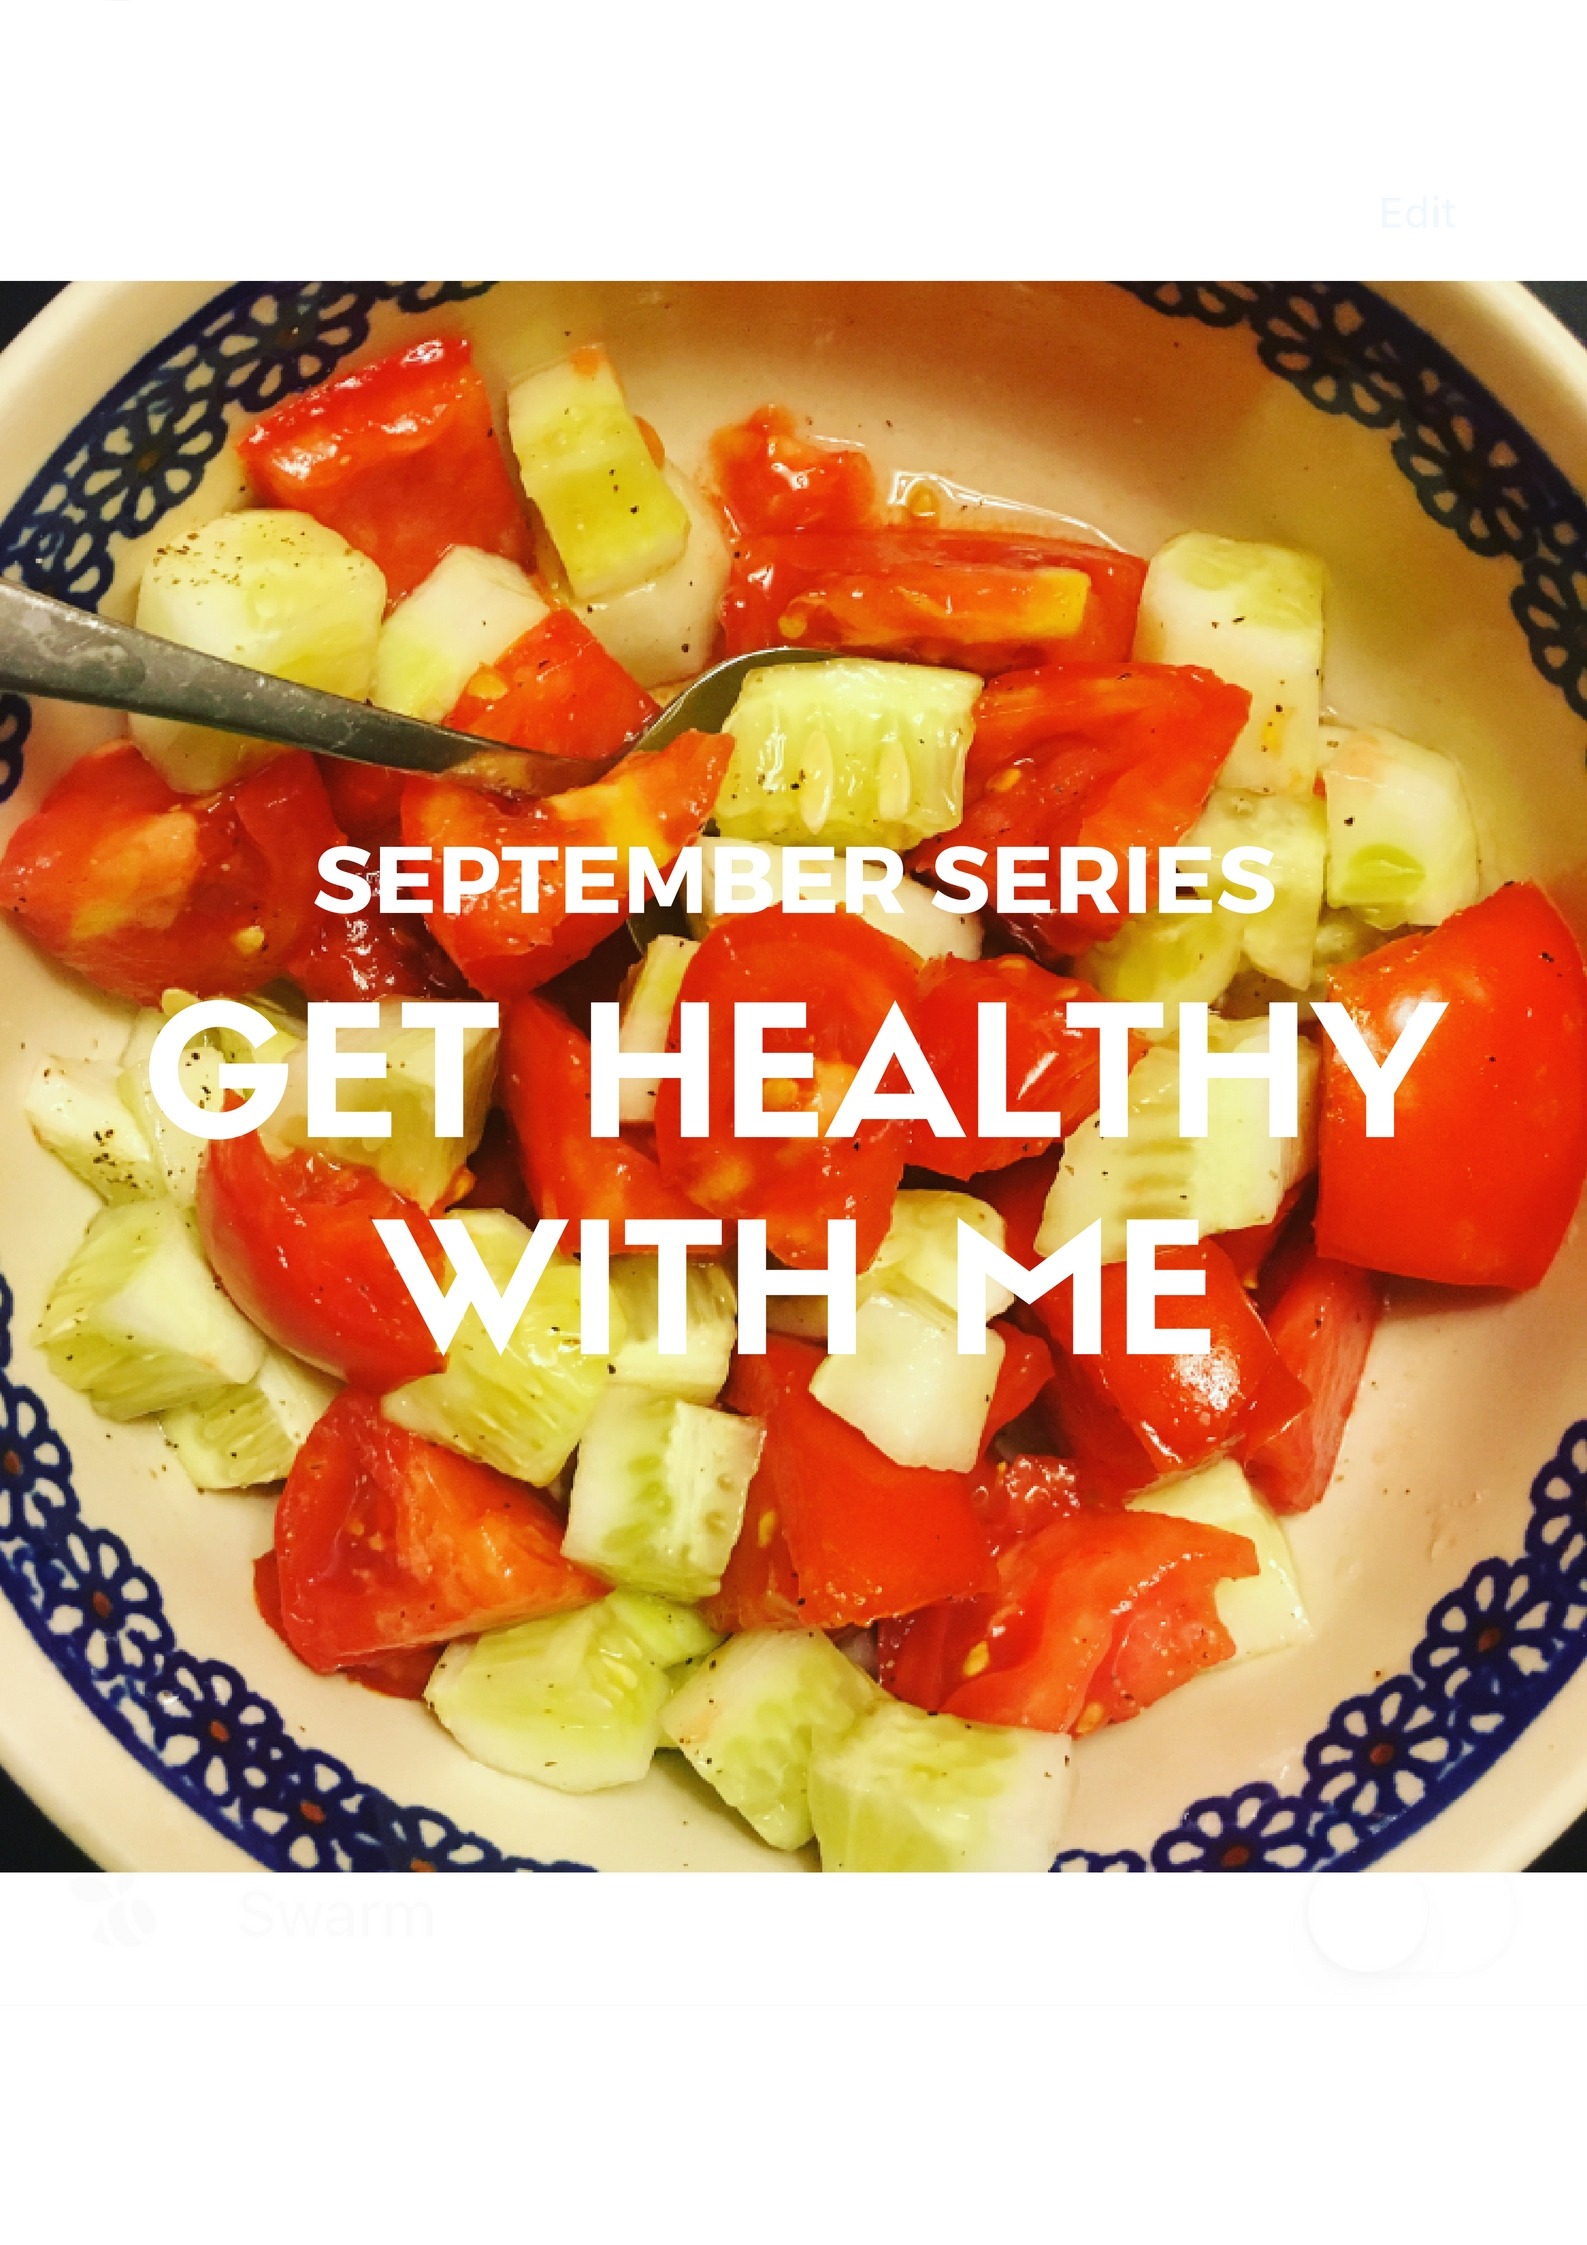 September Healthy Series